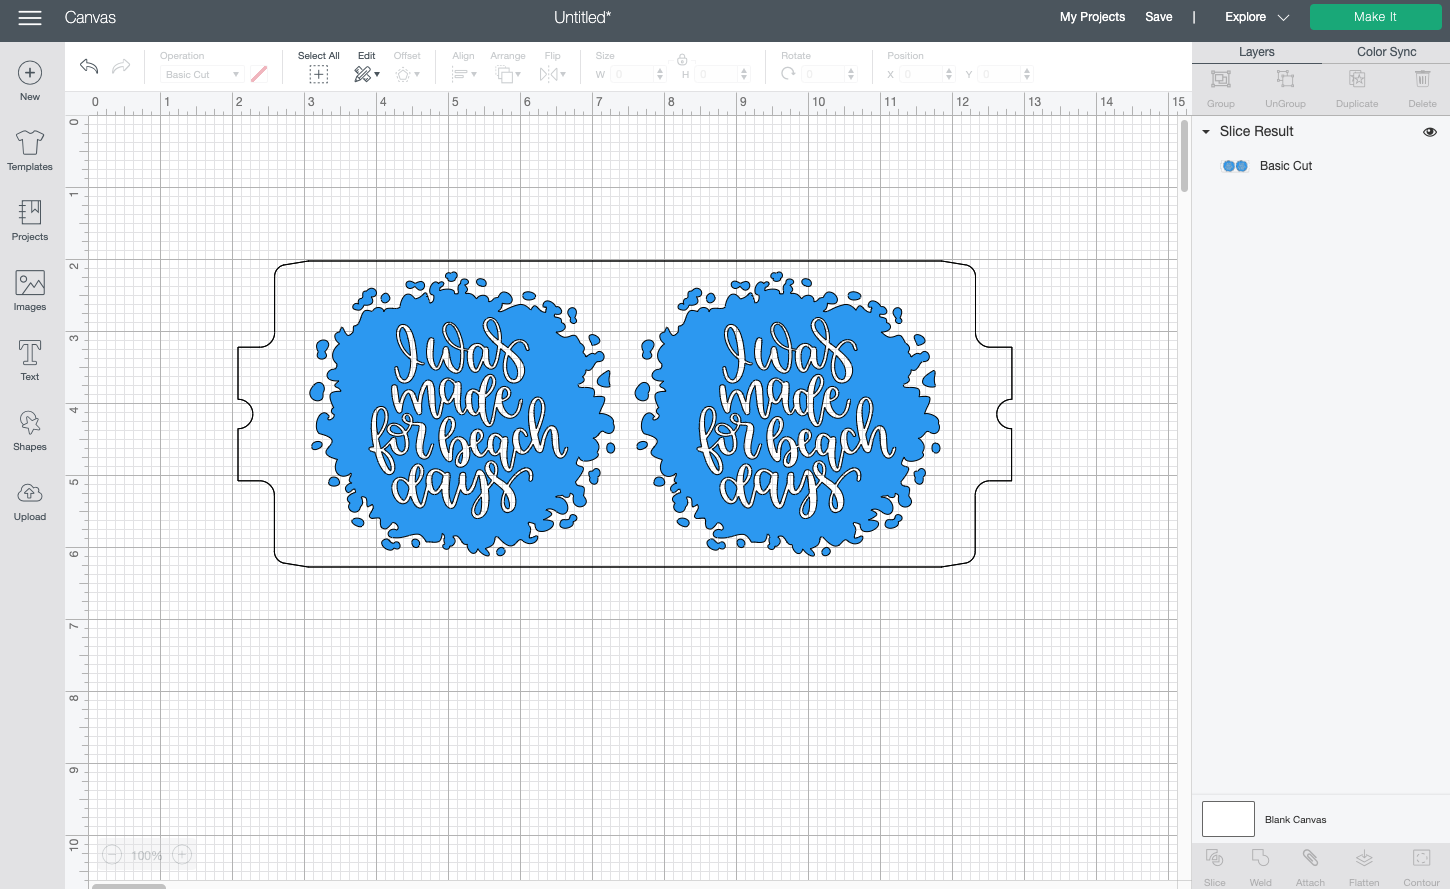 Cricut Design Space: Extra layers removed and recolored blue